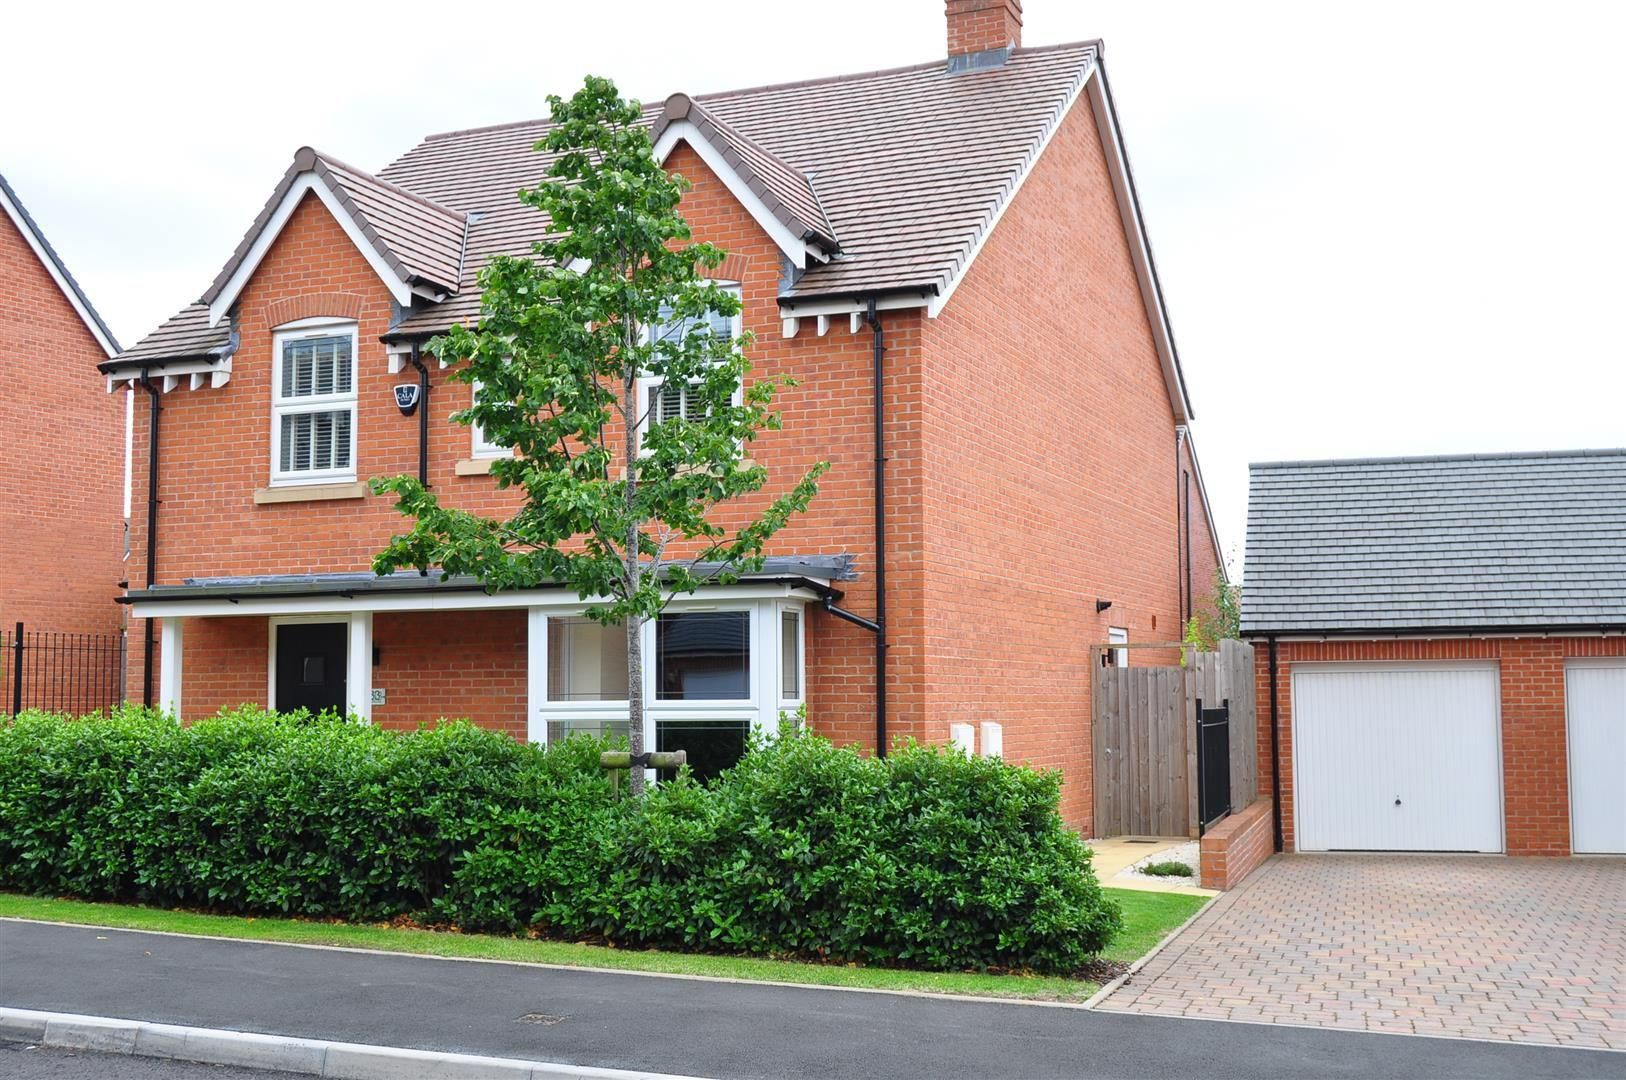 4 bed detached for sale in Hagley  - Property Image 24